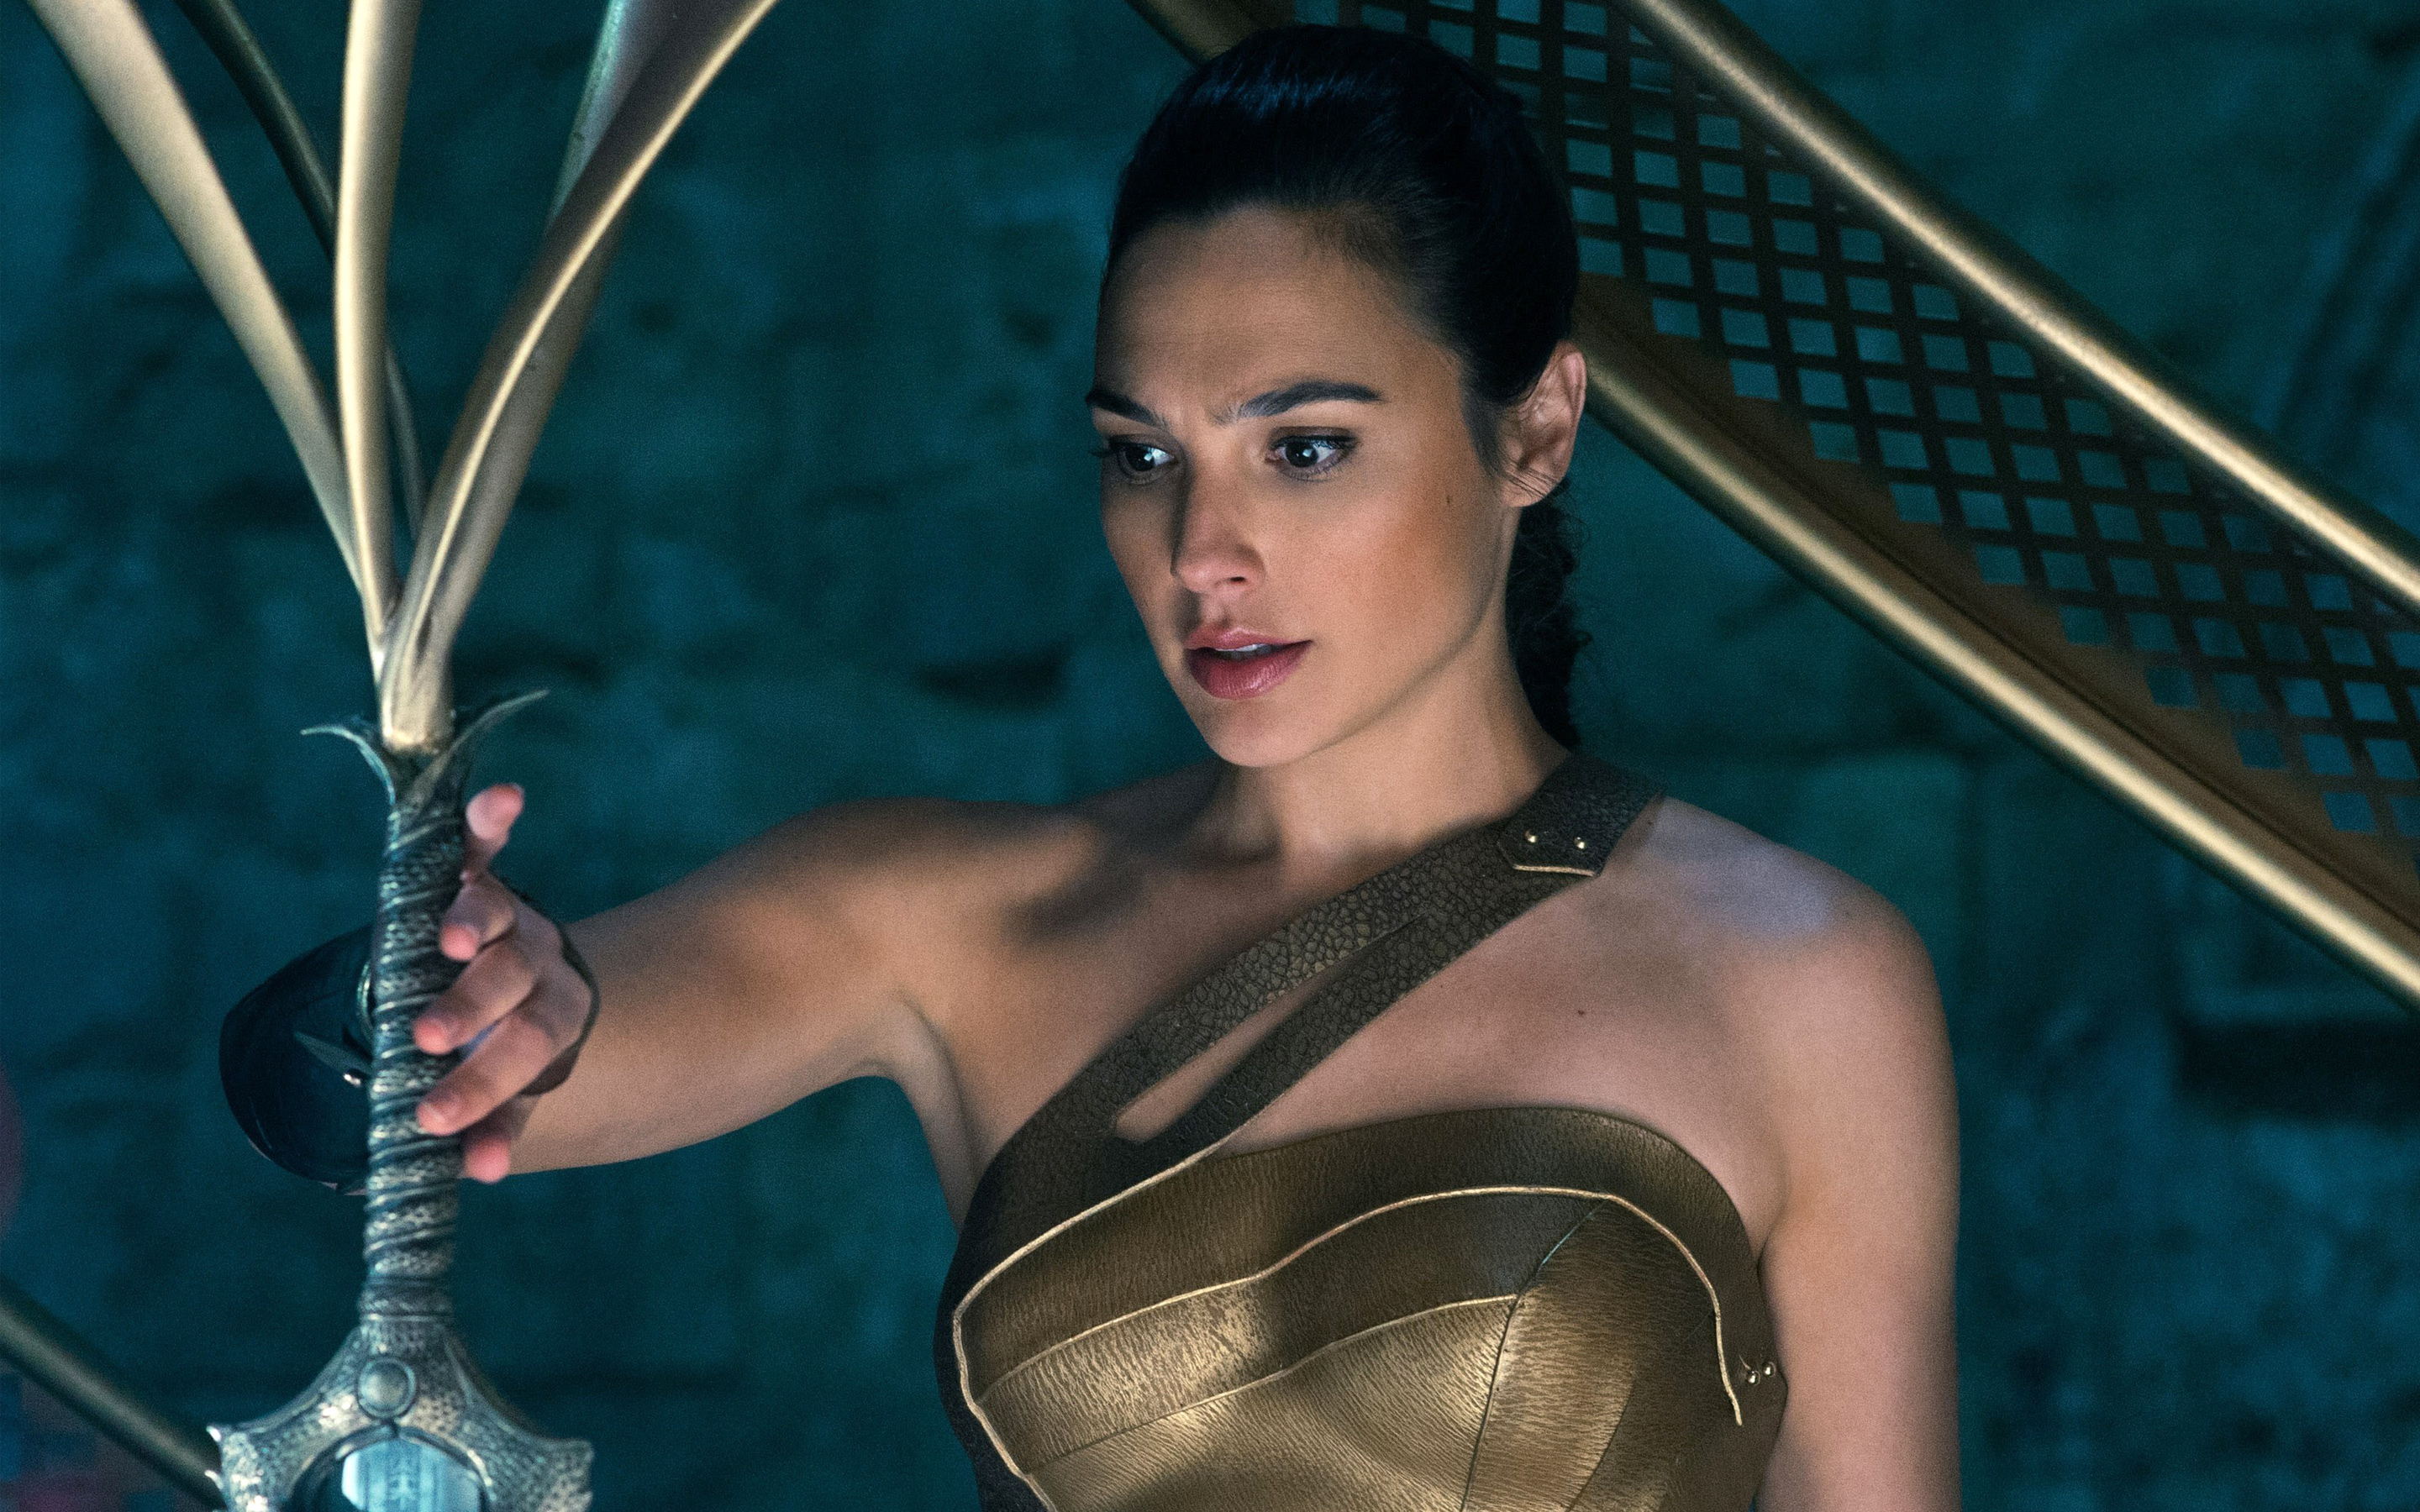 'Wonder Woman' review: Gal Gadot glorious in DC Comics movie